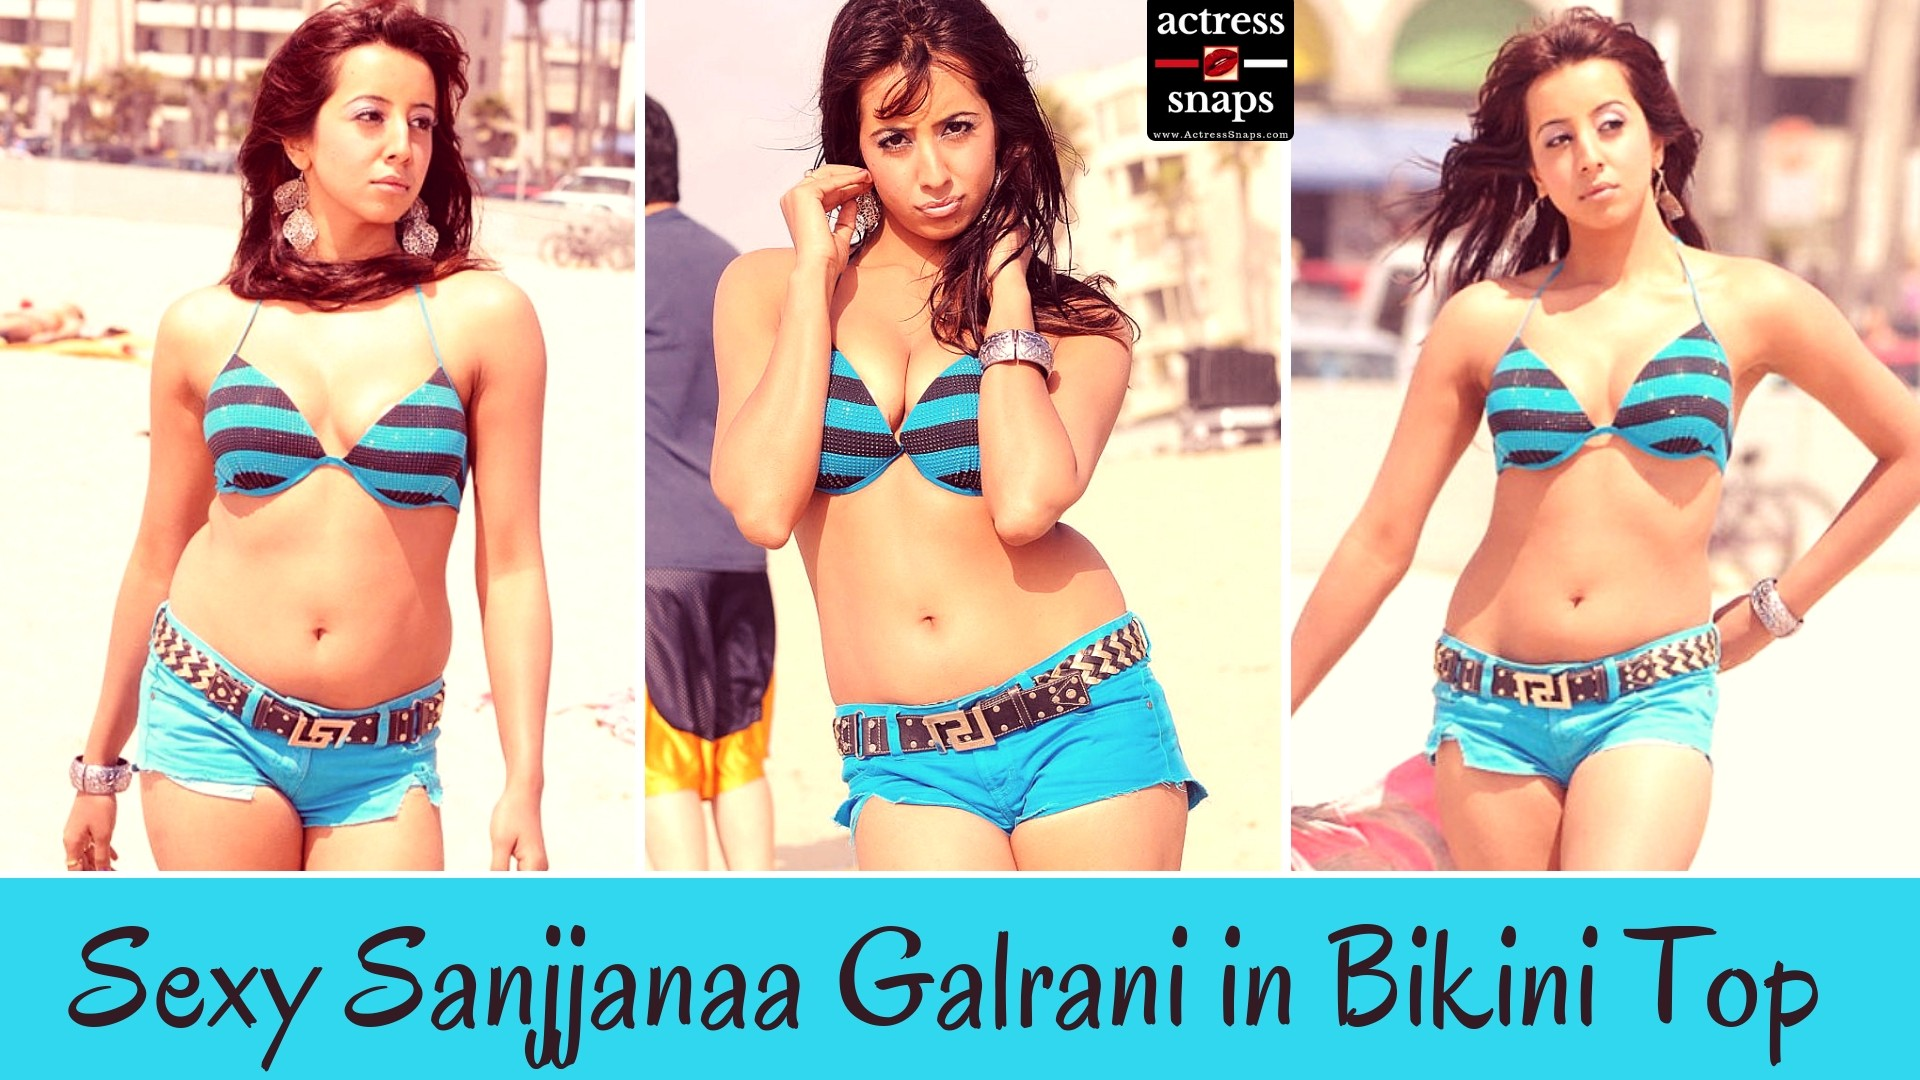 Sexy Sanjjanaa Galrani in Bikini Top - Sexy Actress Pictures | Hot Actress Pictures - ActressSnaps.com